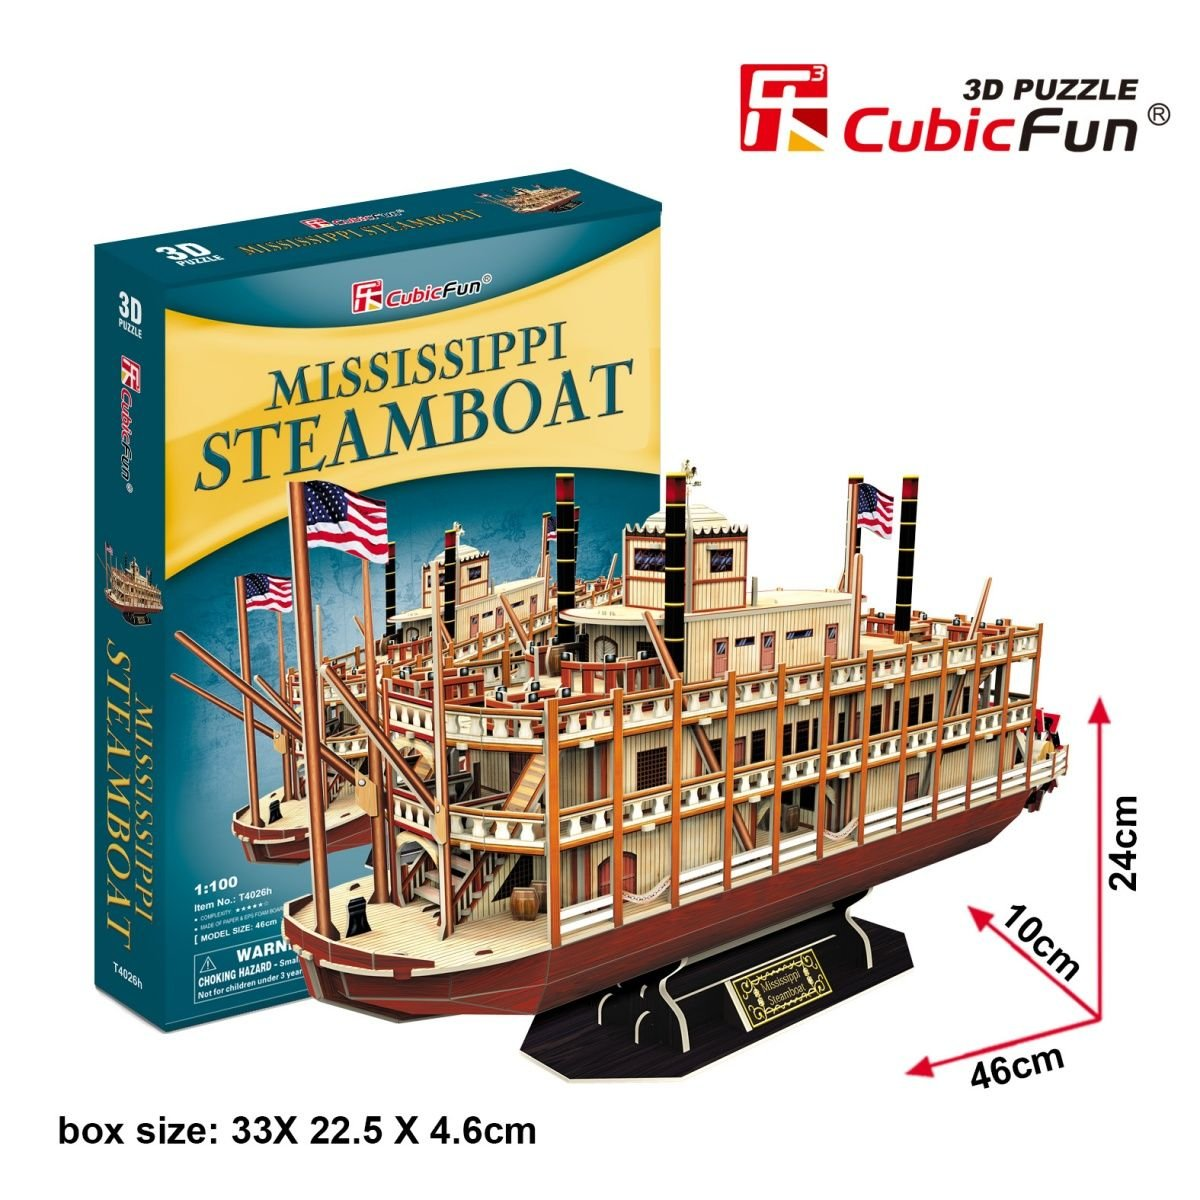 amazoncom mississippi steamboat 3d puzzle cubic fun construction kit 1100 142 pieces toys games - Bateau Mississipi